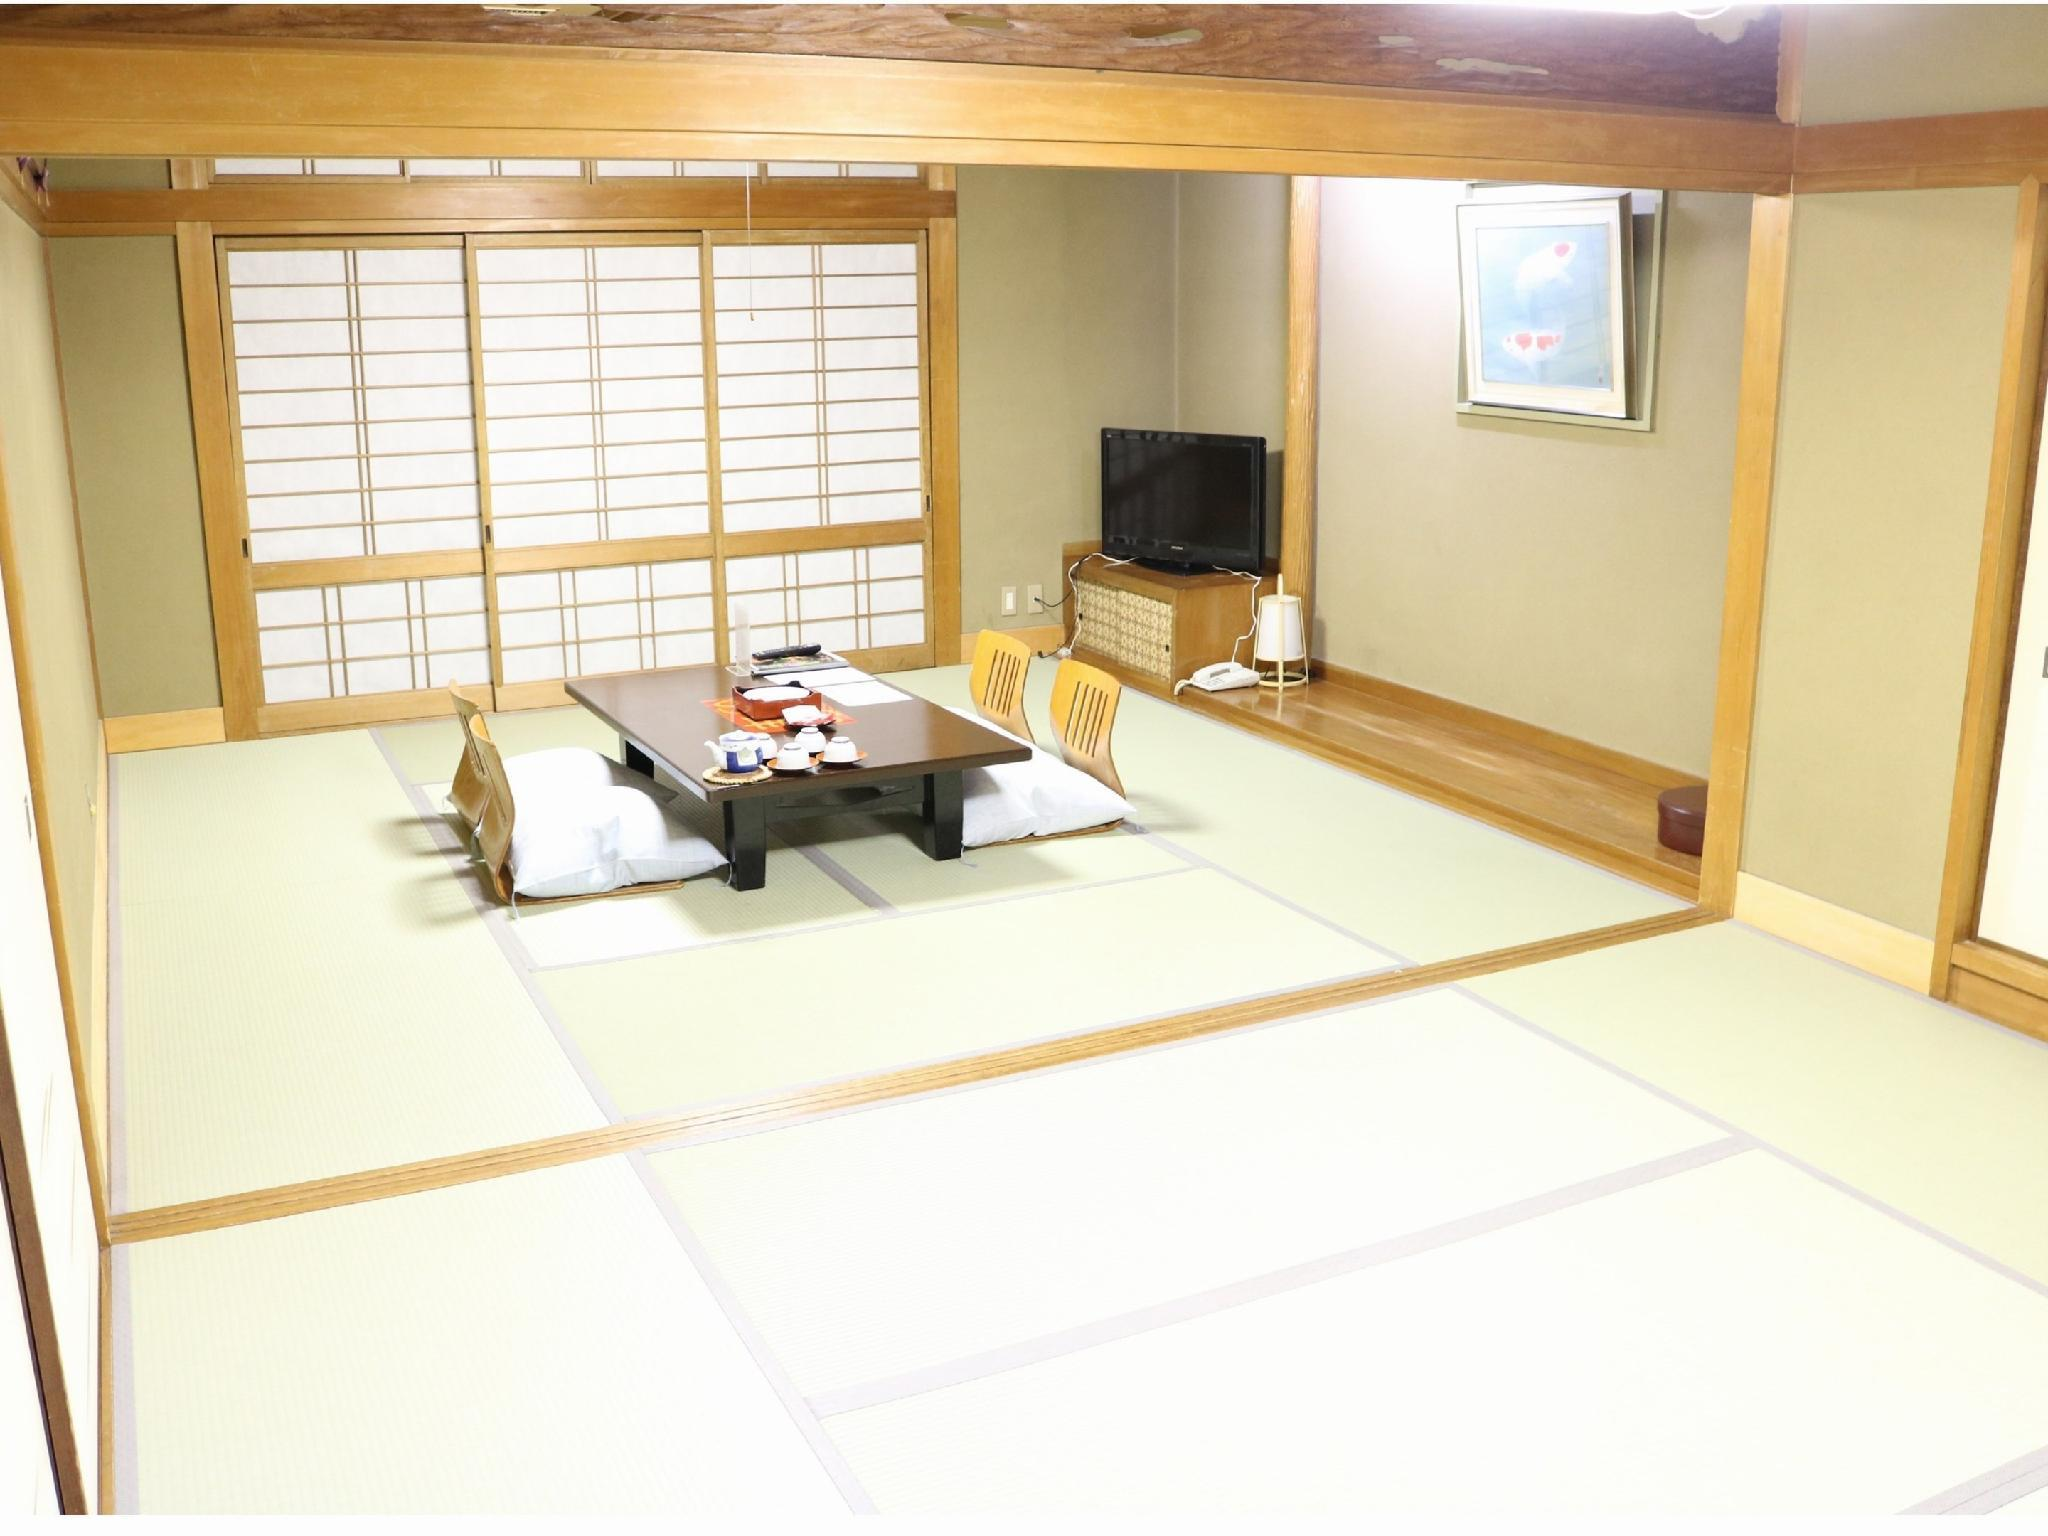 和式房(客房内无浴室、有厕所) (Japanese-style Room *Has toilet, no bath in room)